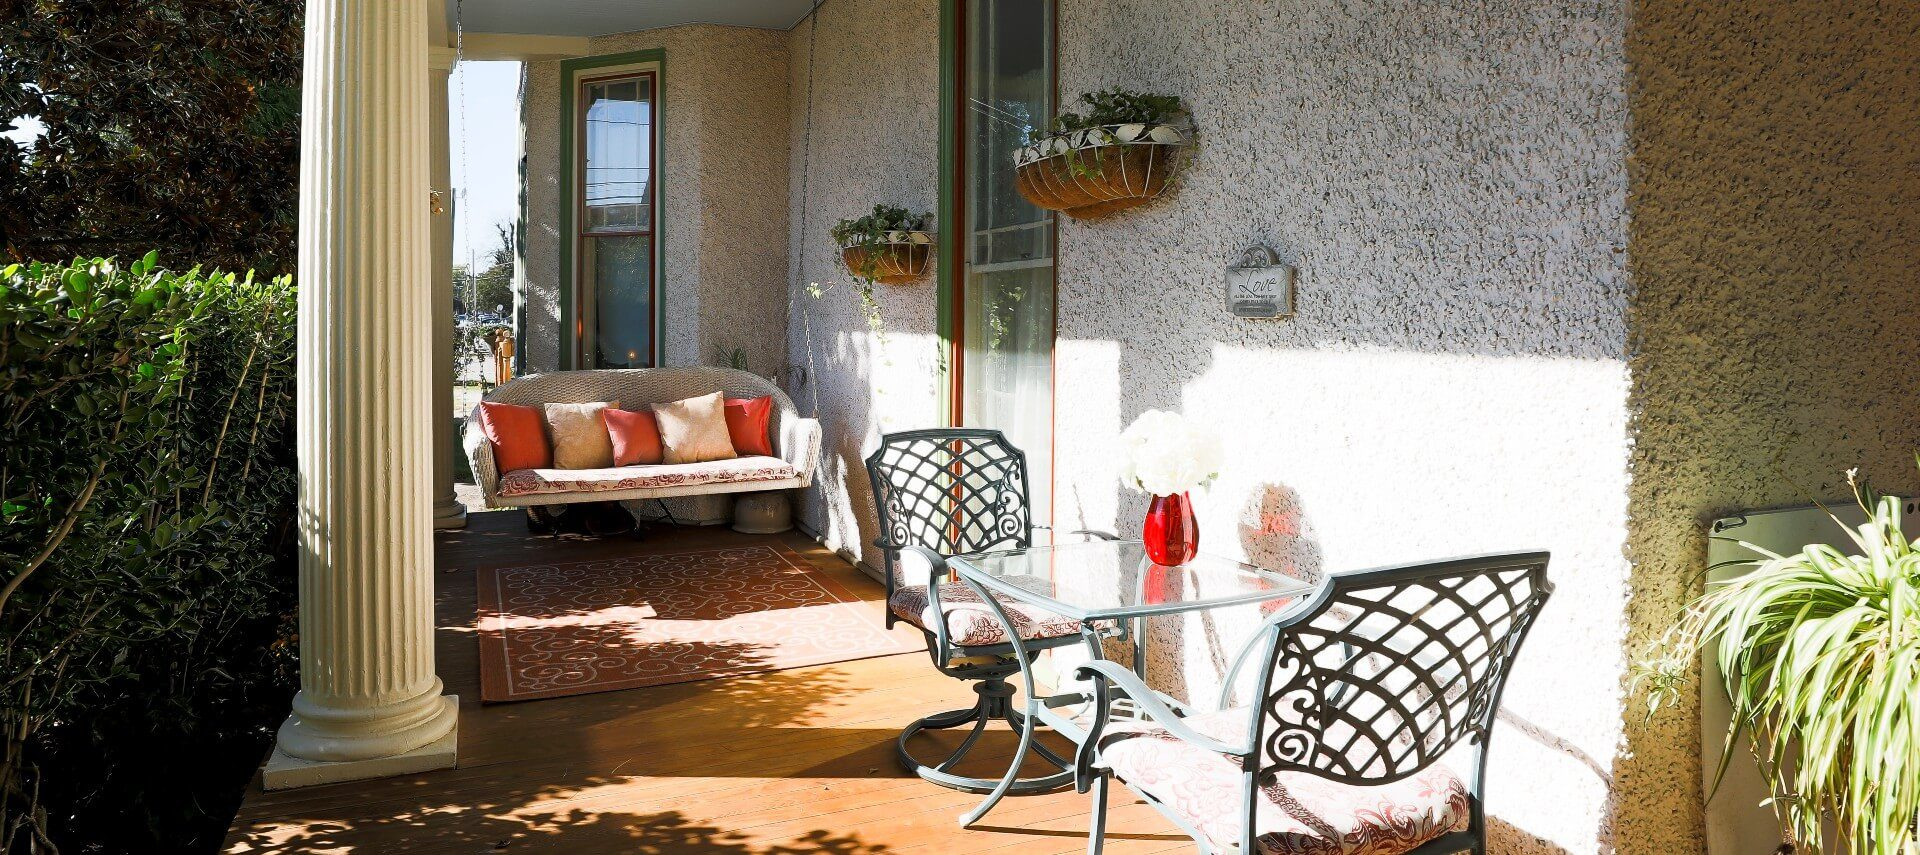 Outside patio of a home with hanging loveseat and wrought iron table with two chairs